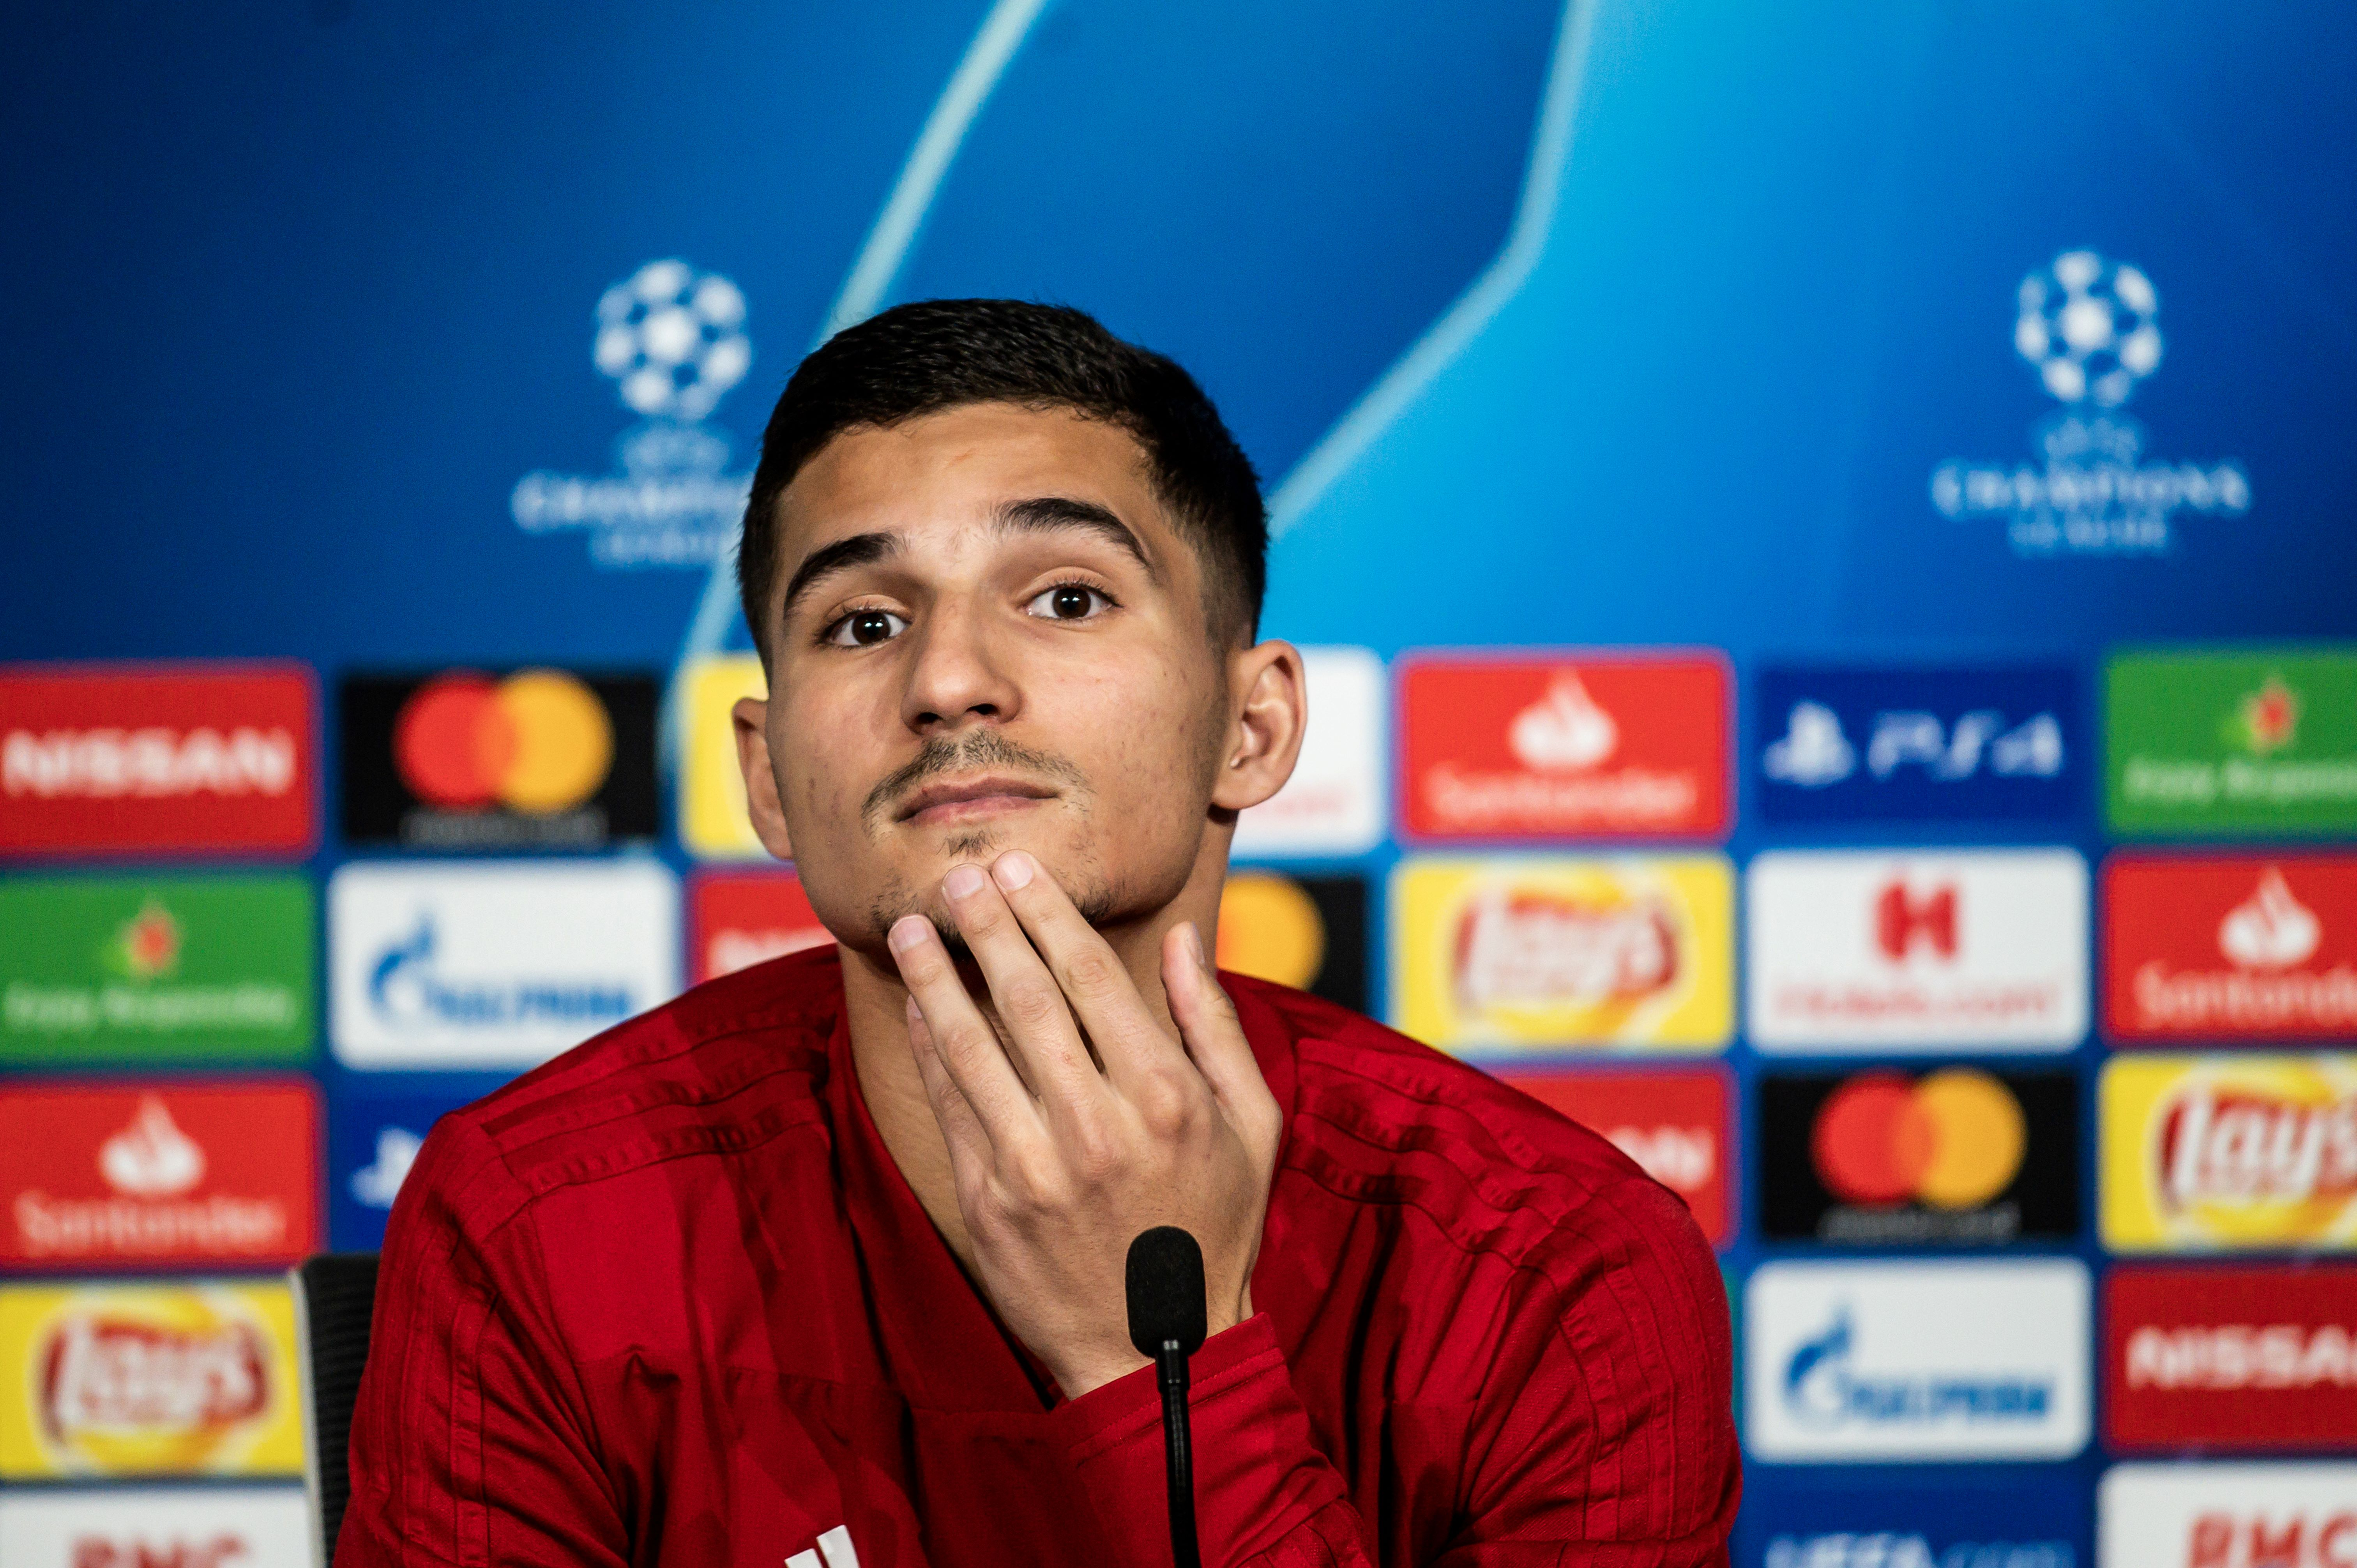 Manchester City and Chelsea keeping a keen eye on Aouar who is seen in the picture